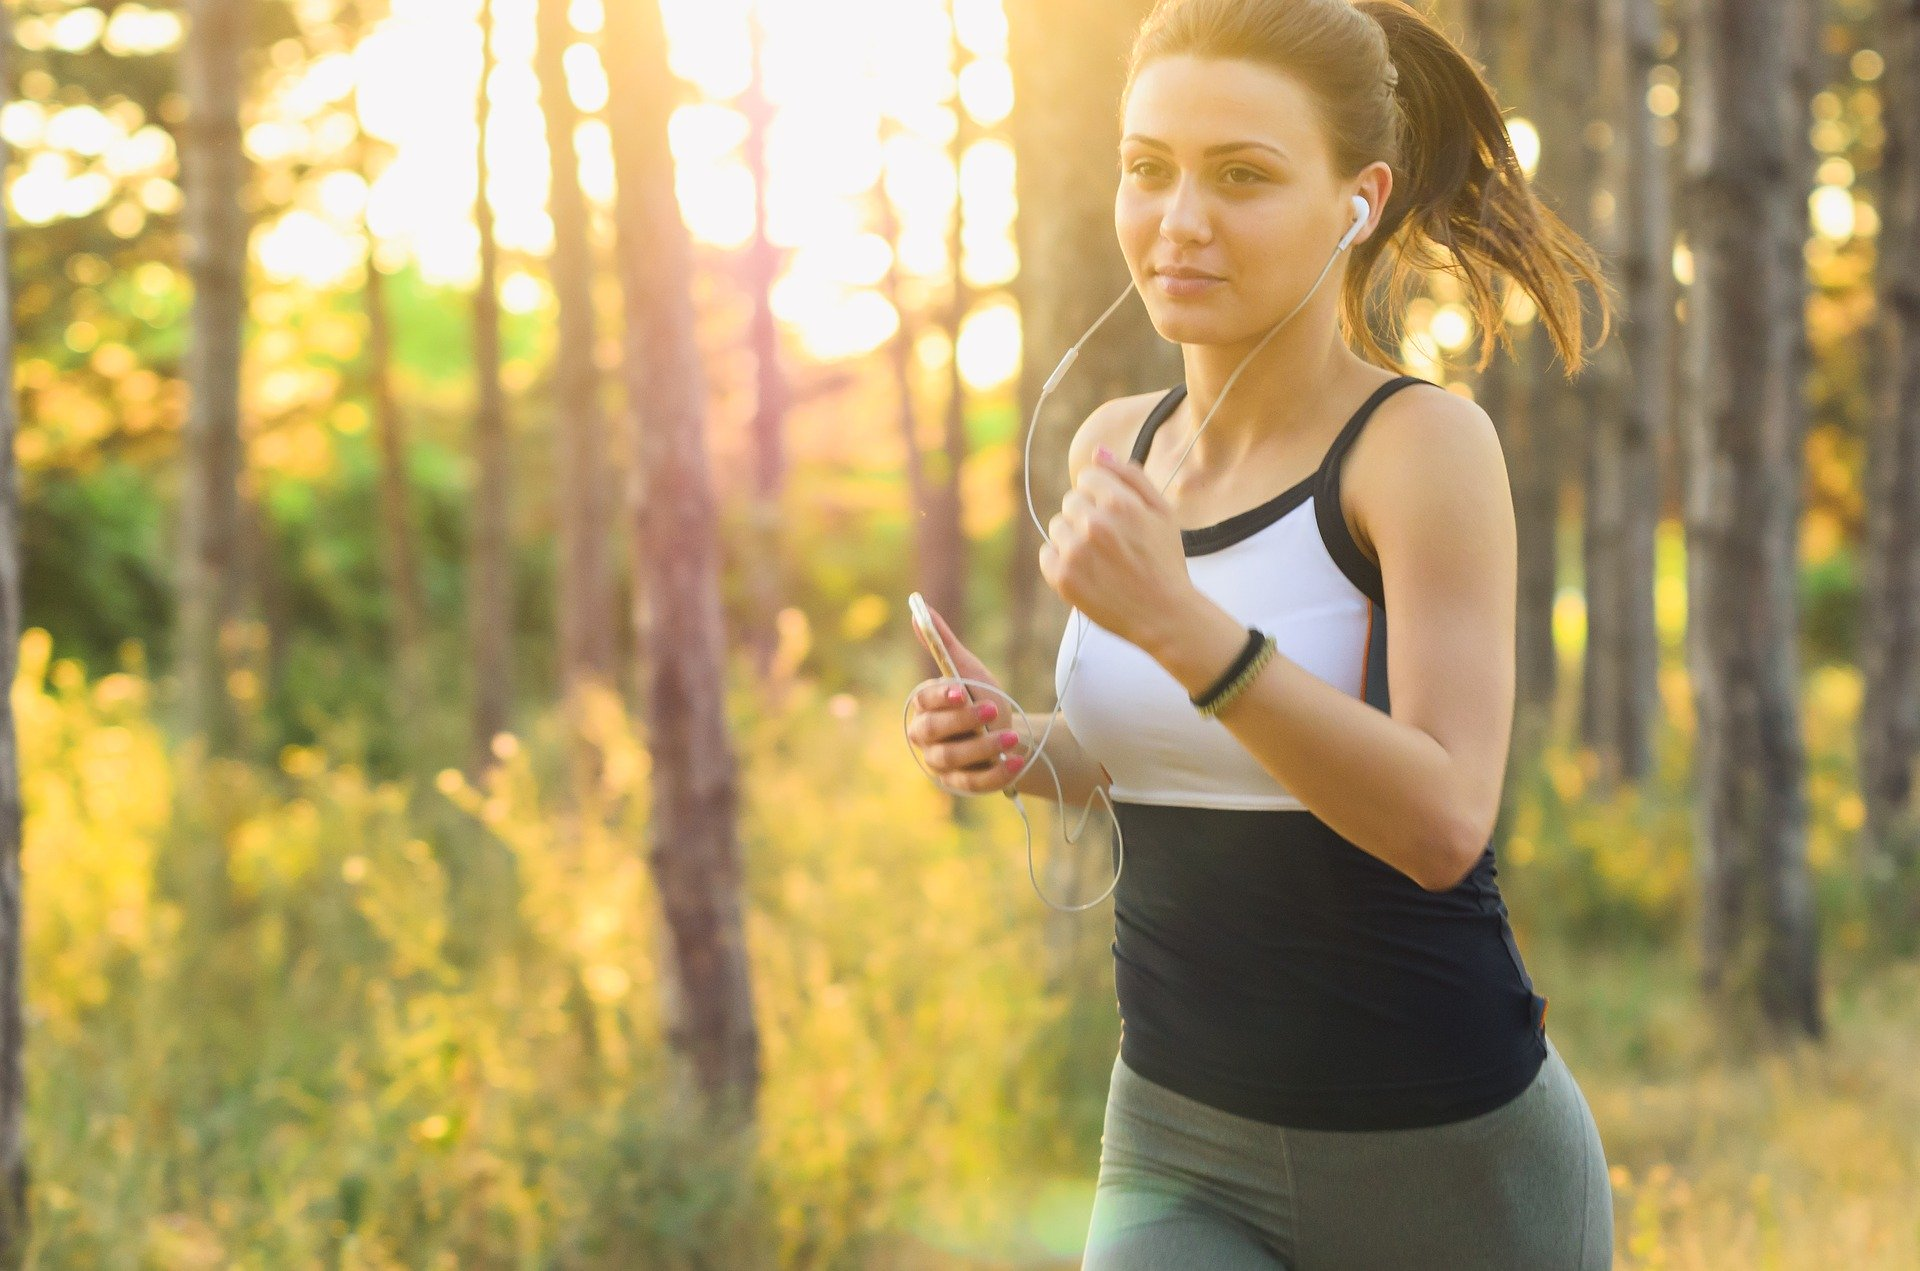 Top 4 Eco-Friendly Sports